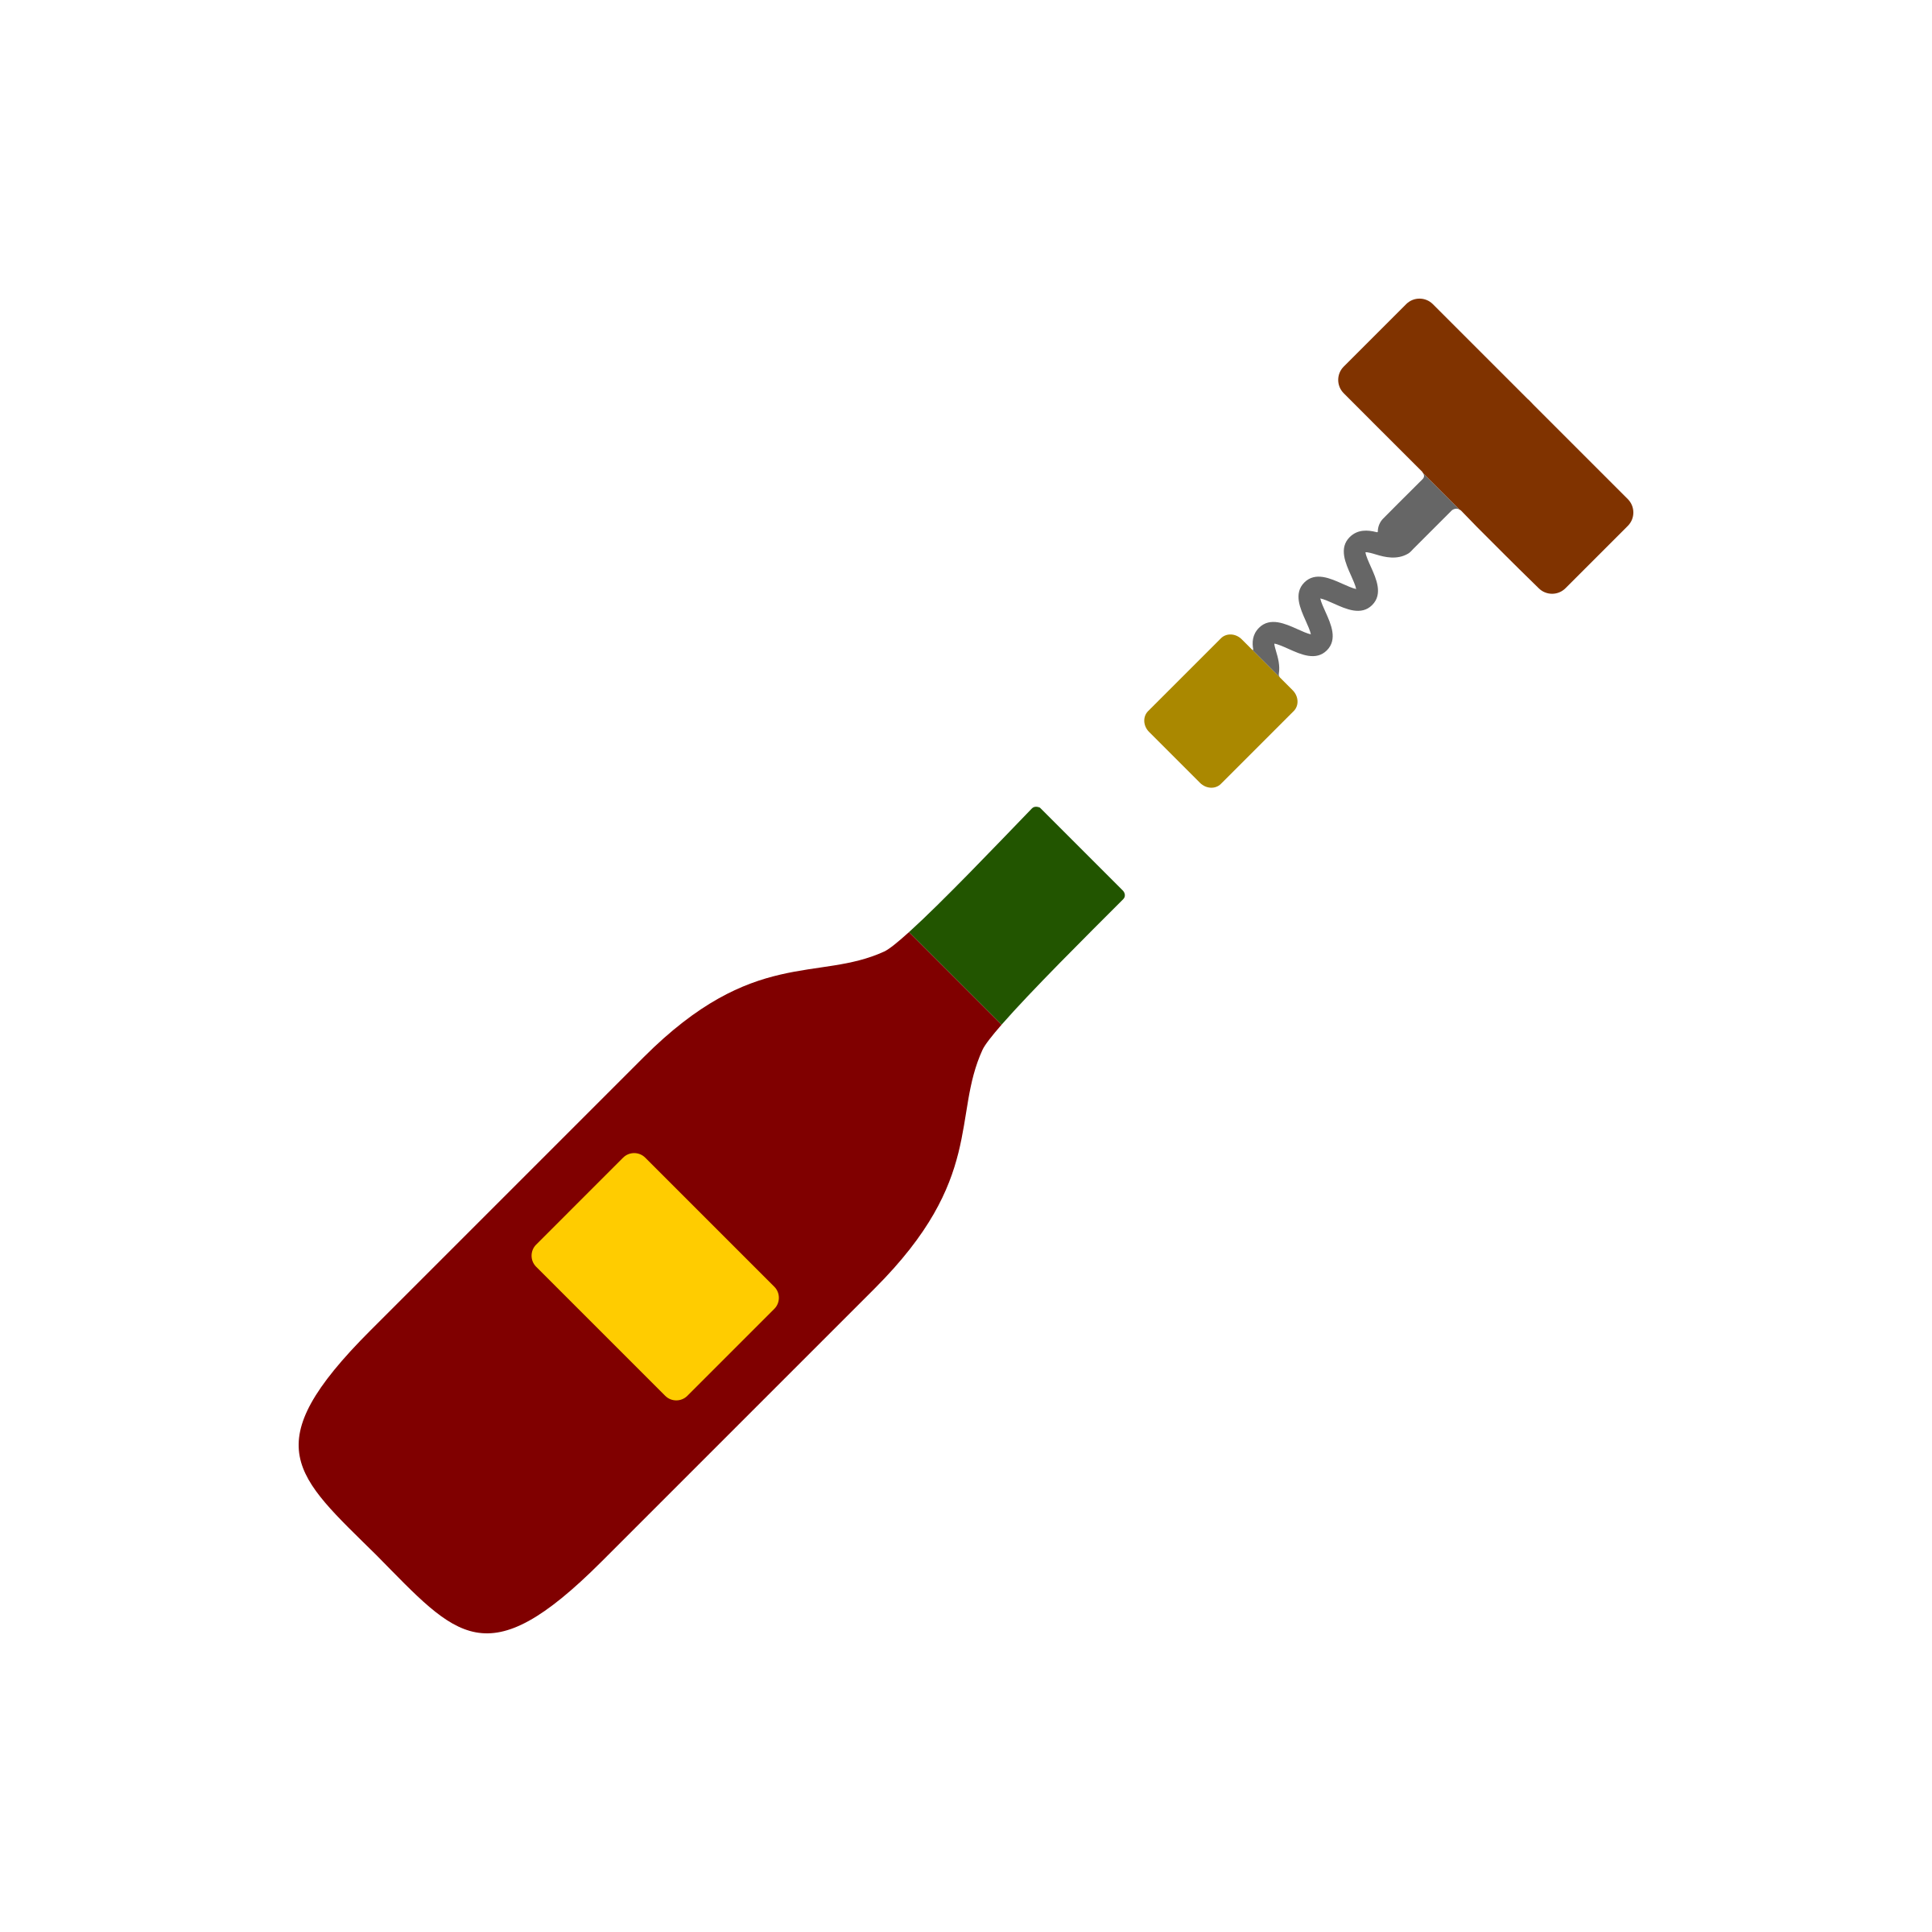 Wine Cork Open by j4p4n